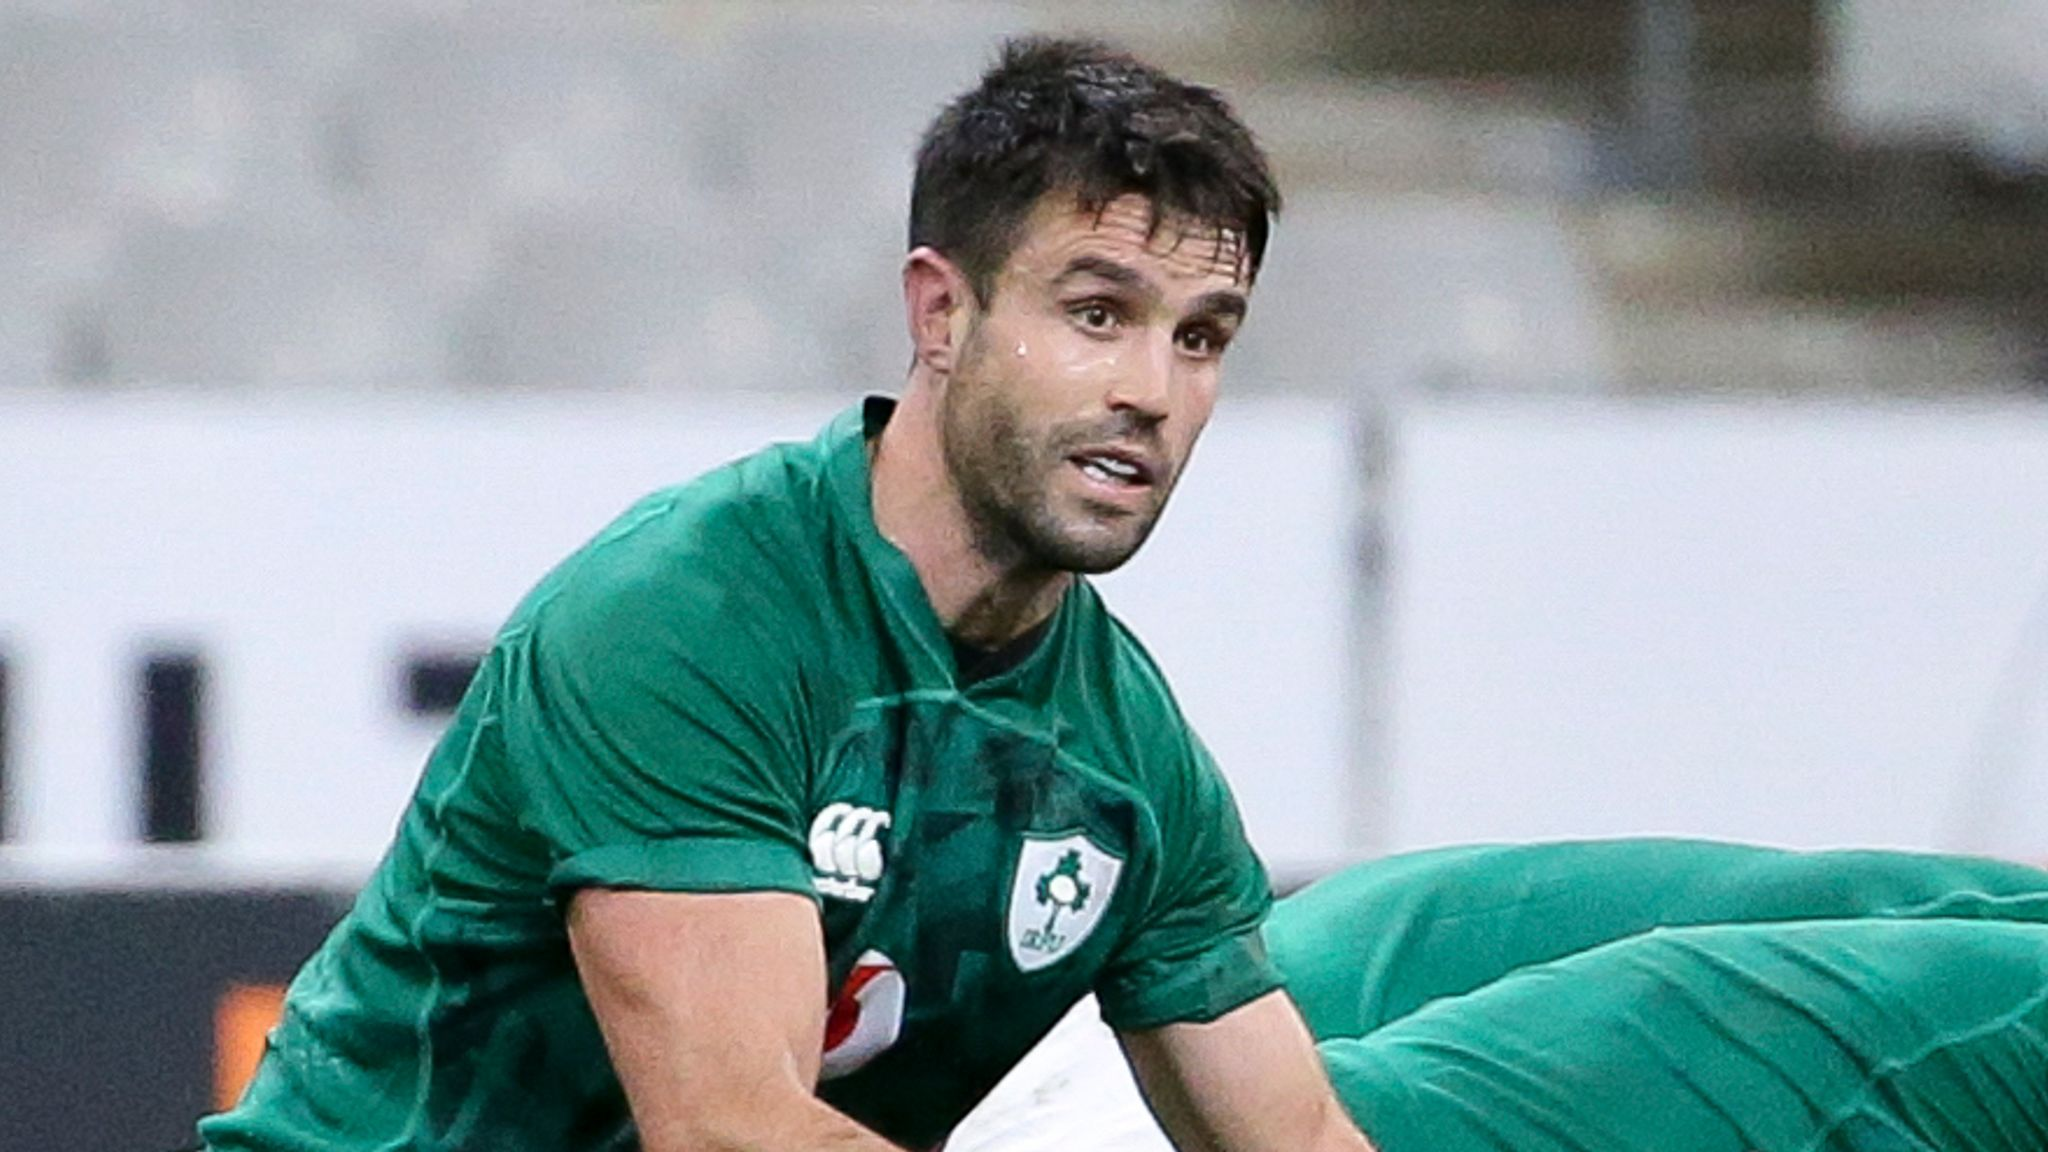 Ireland scrum-half Conor Murray says they must improve to beat England at  Twickenham | Rugby Union News | Sky Sports